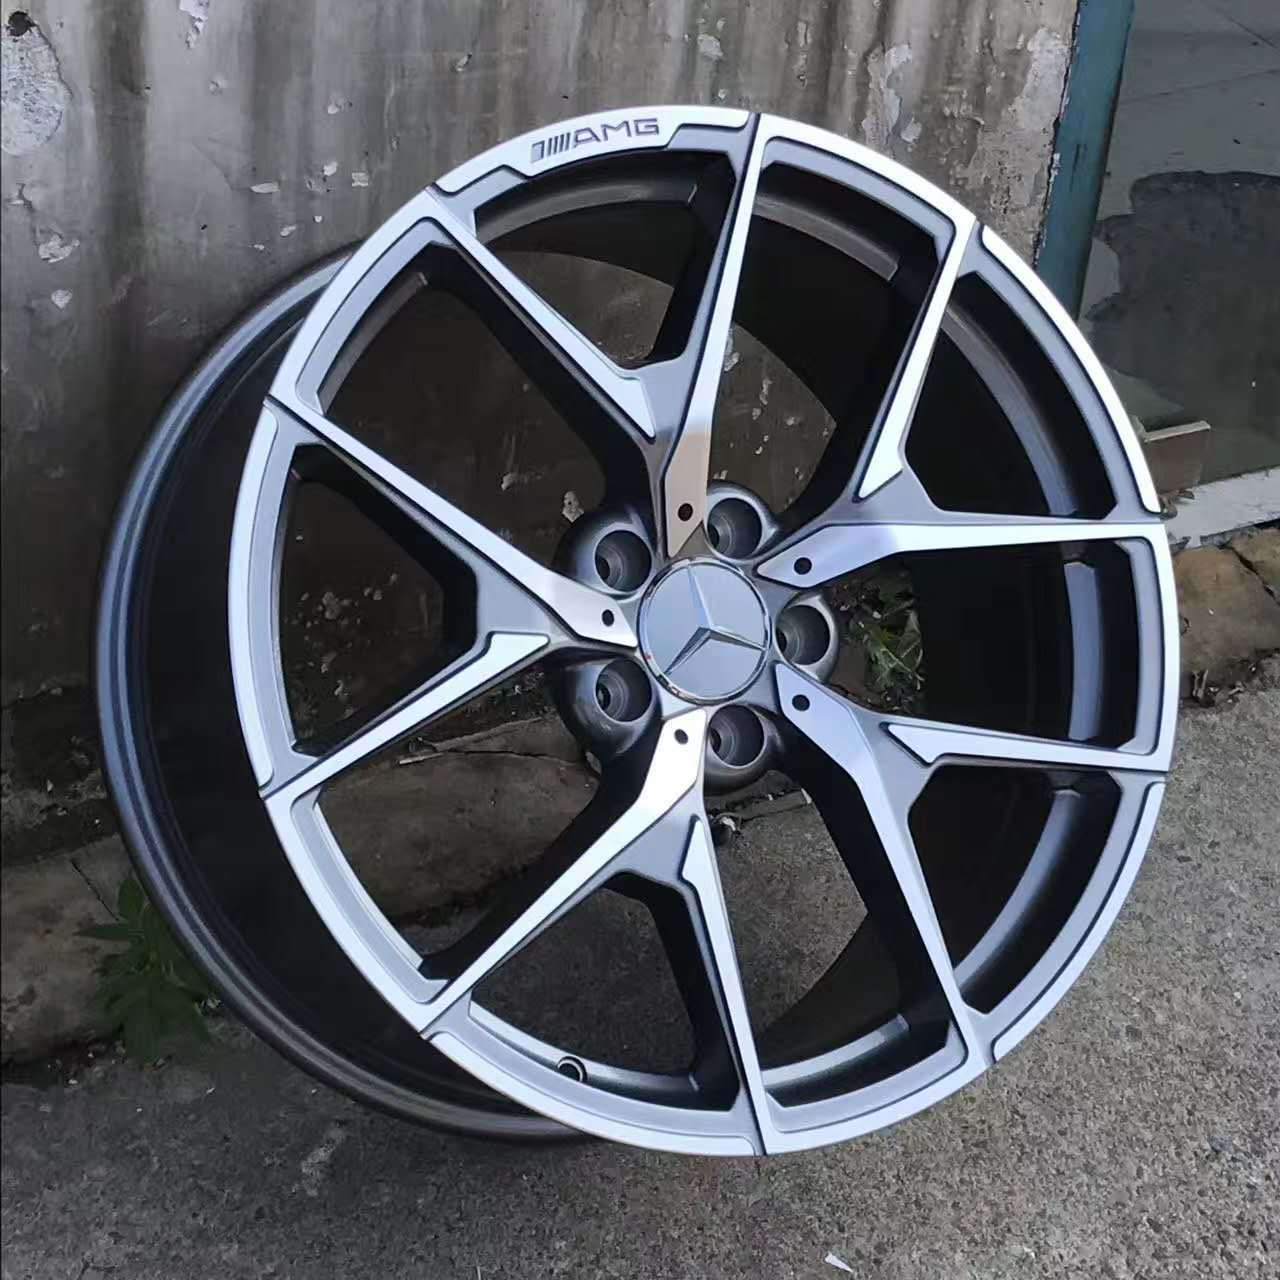 V5 alloy wheels on the car